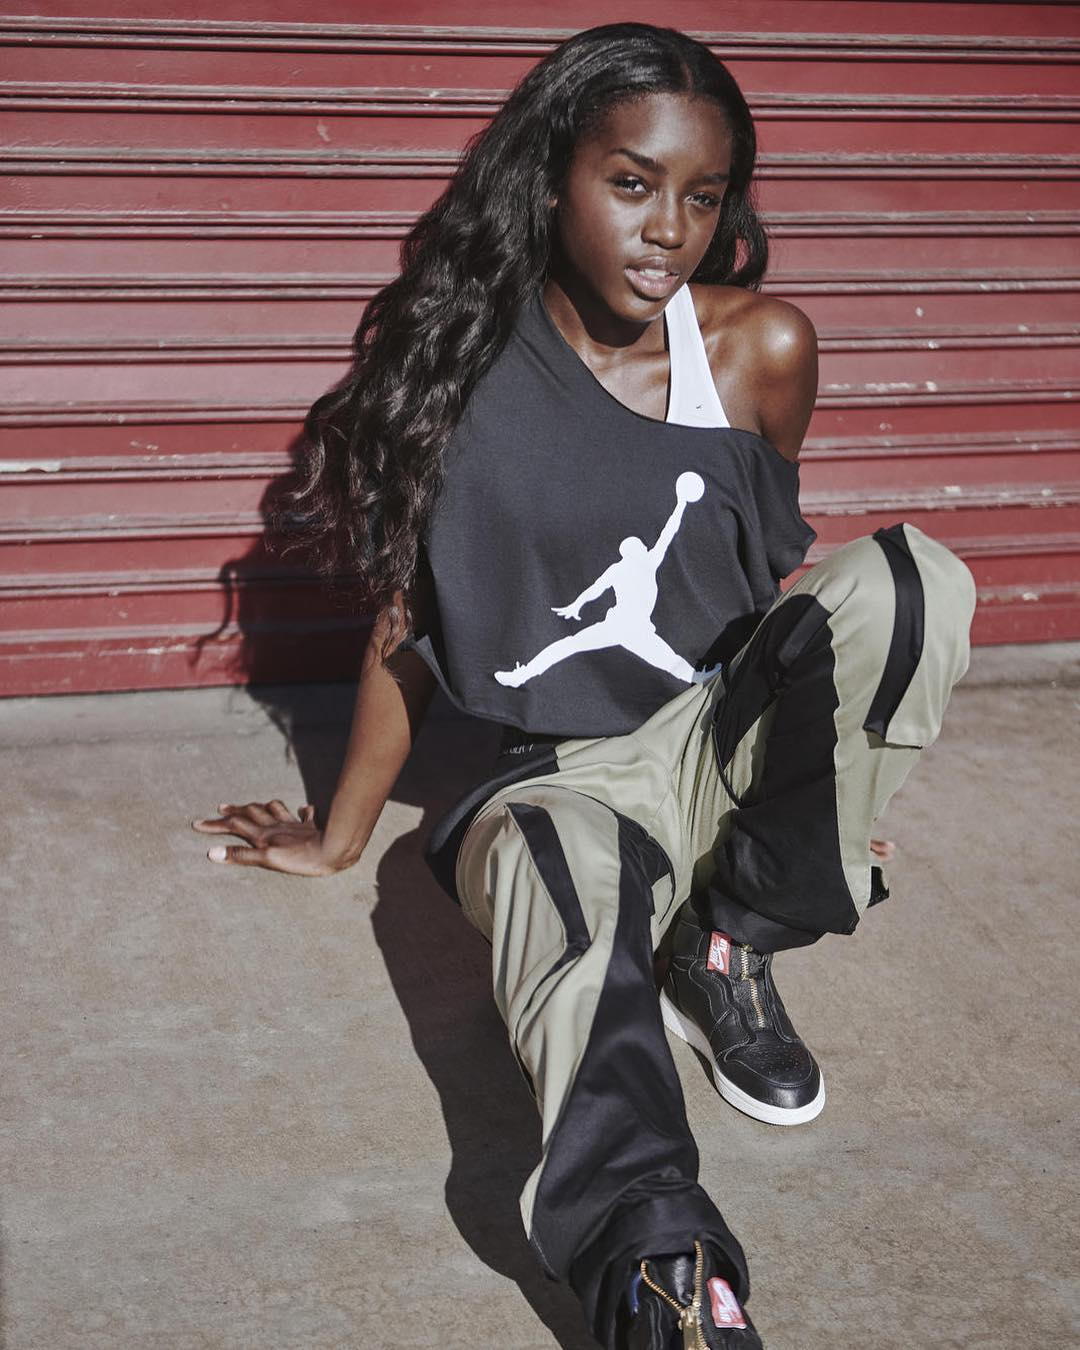 Nike Campaign with Marna Ro pants